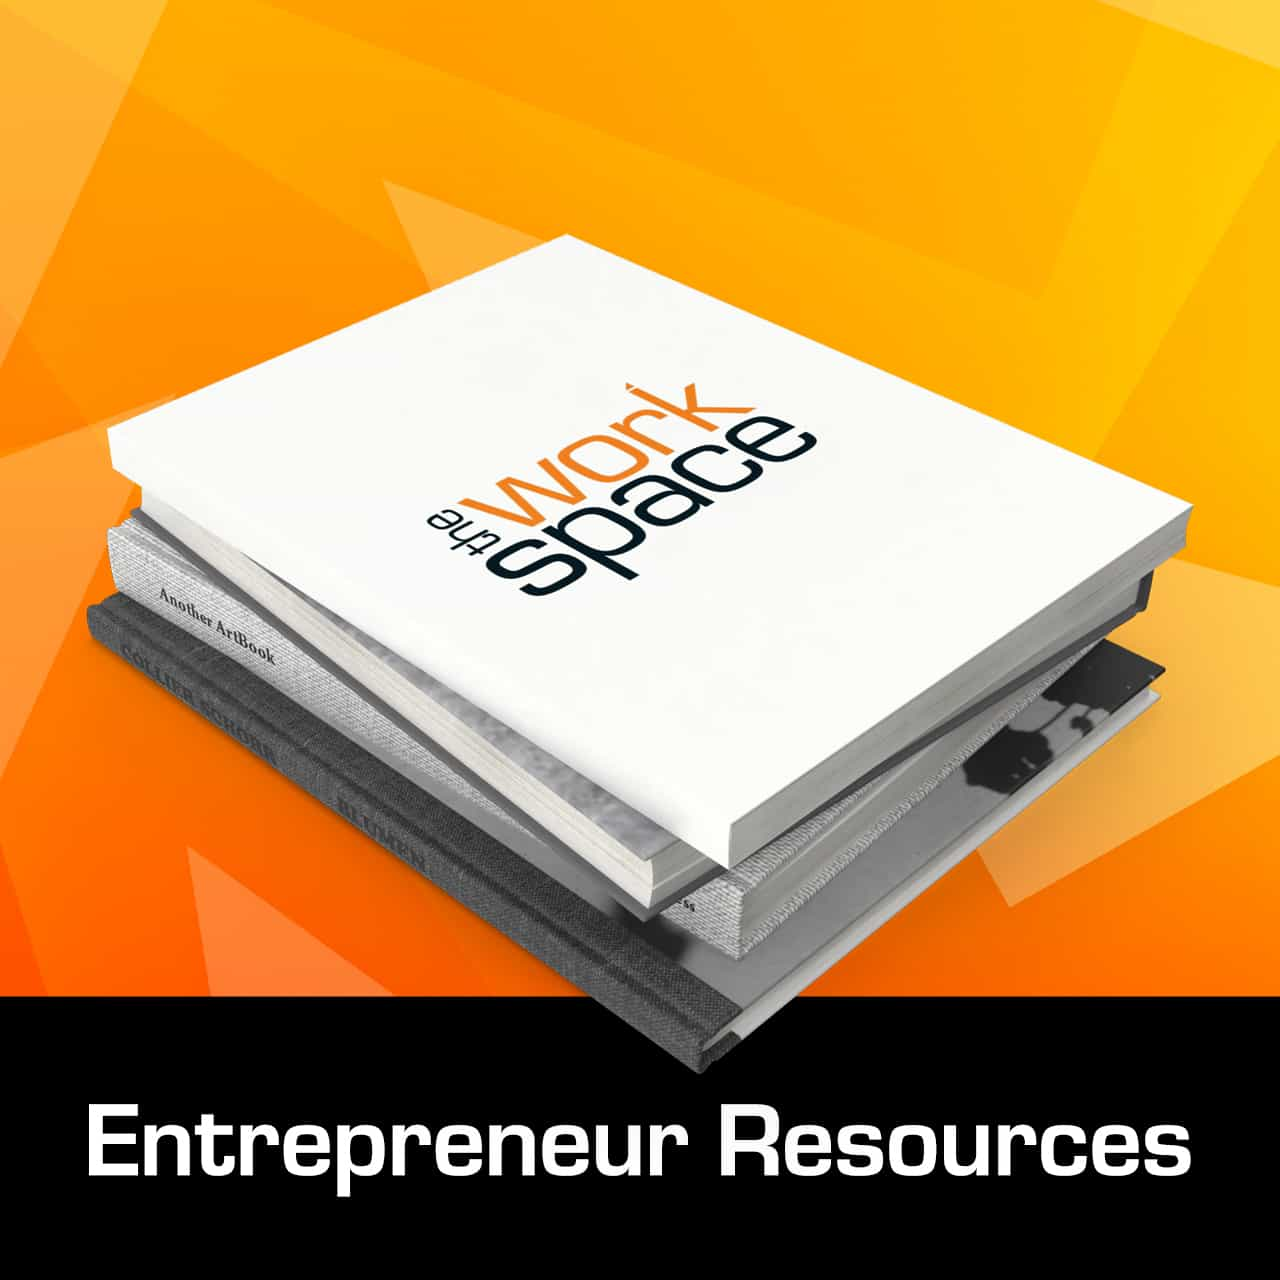 Entrepreneur resources